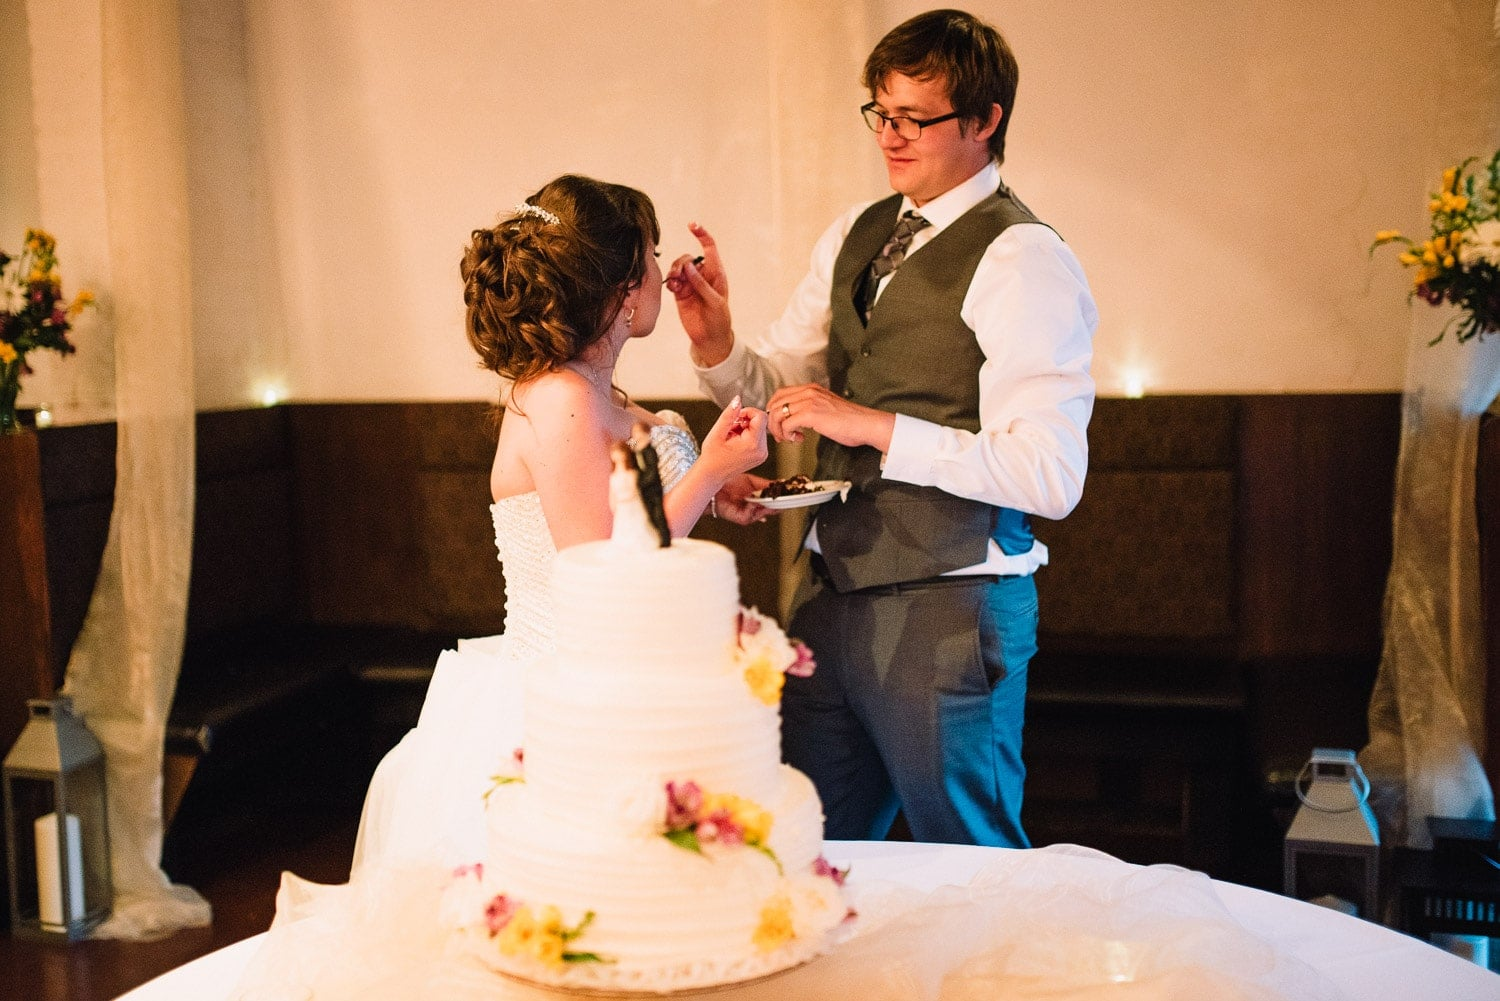 The groom is feeding wedding cake to his bride.